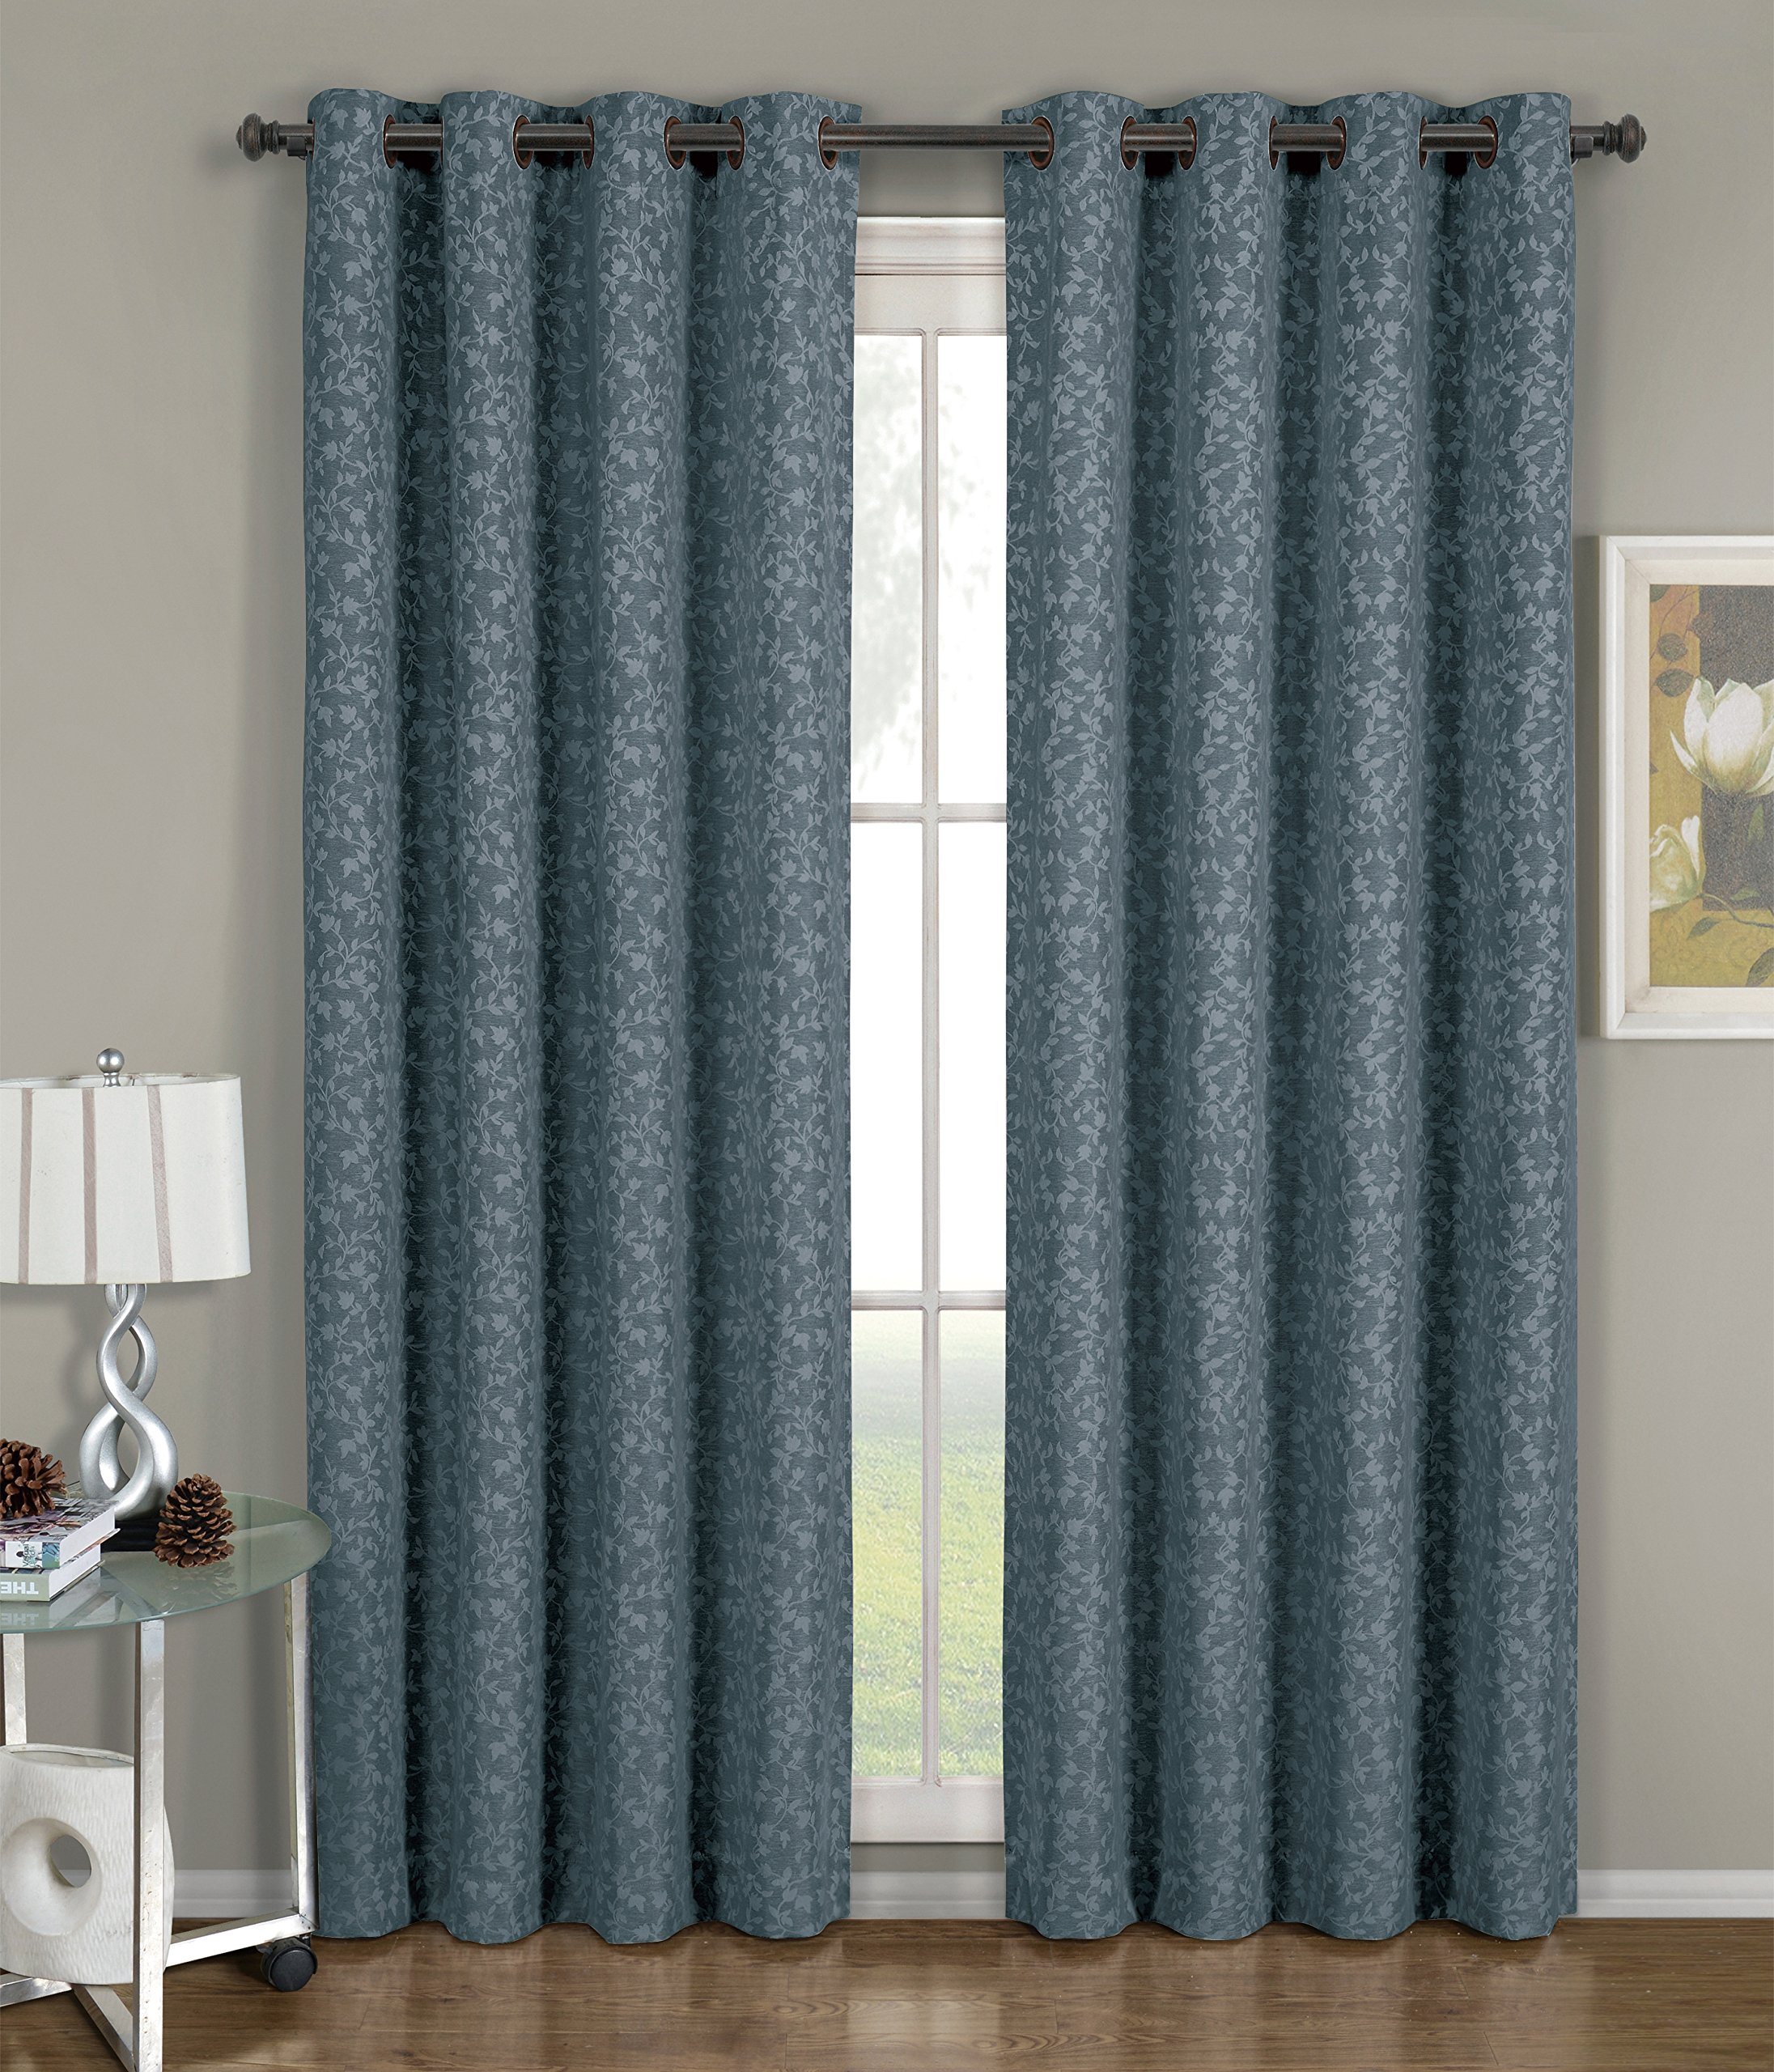 Fiorela Blue Grommet Jacquard Window Curtain Panel, 1 Single Panel, 54x96 inches, by Royal Hotel